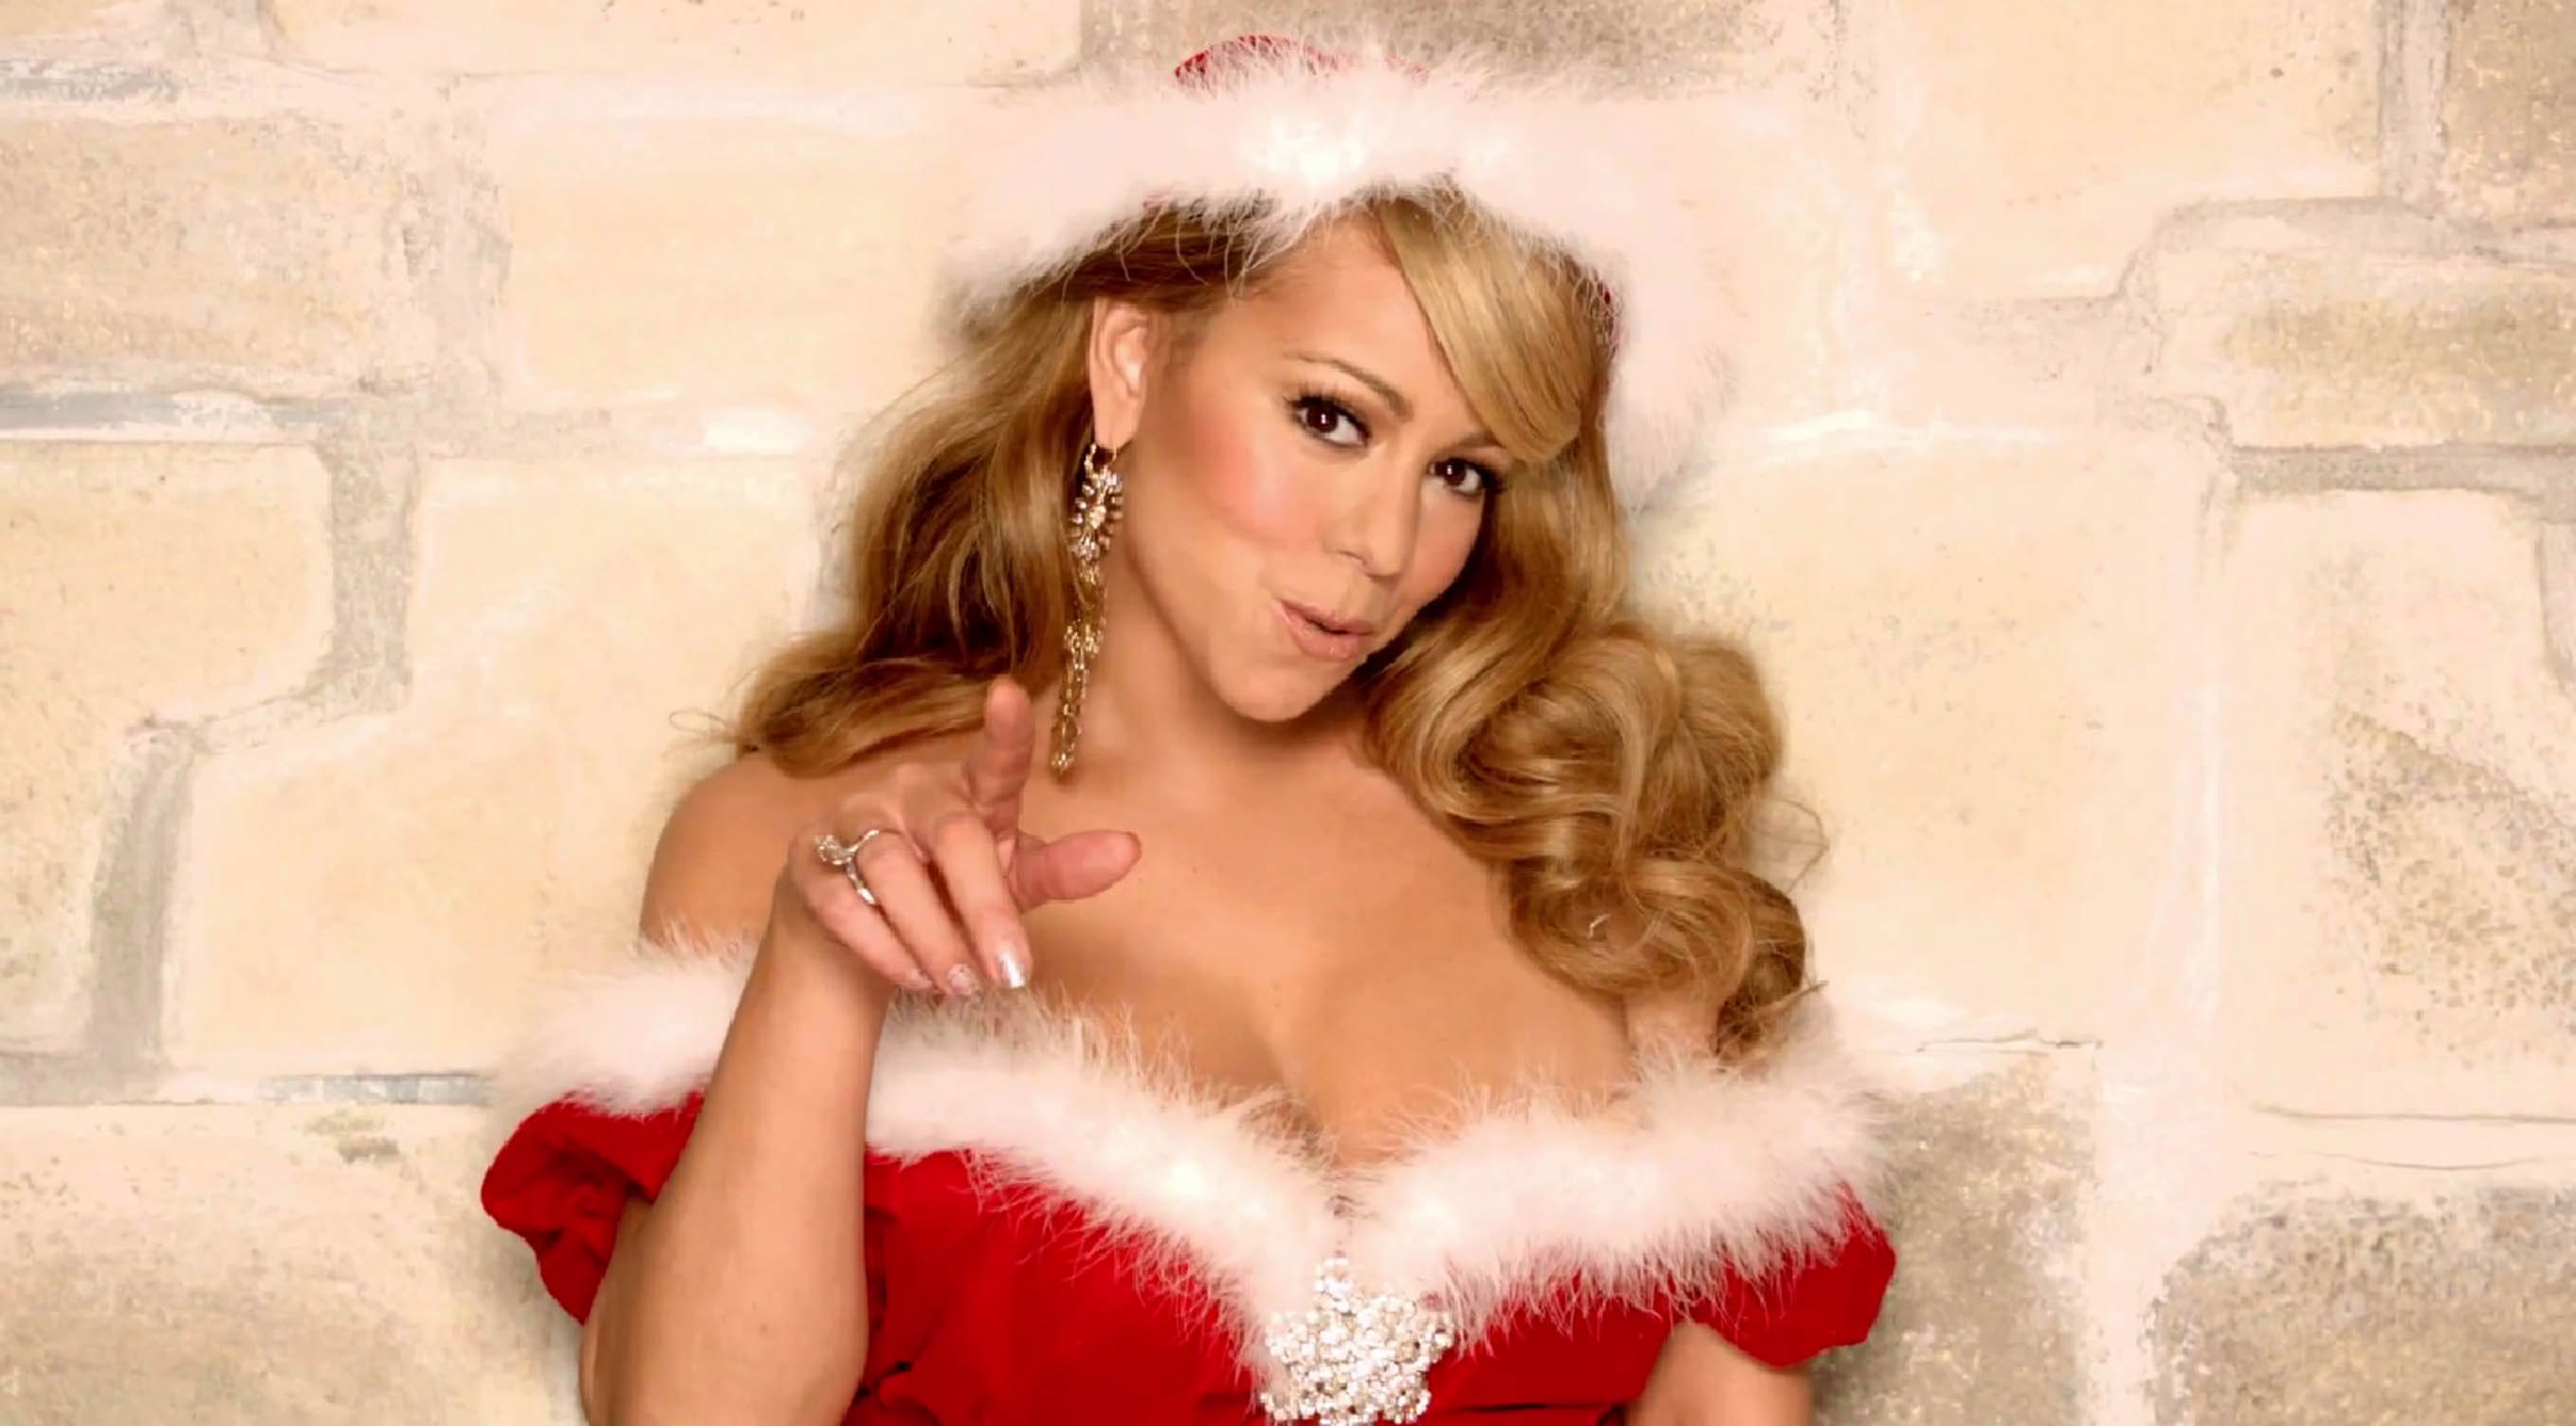 'All I Want for Christmas Is You' Mariah Carey Raih Posisi Tertinggi Baru Di Hot 100